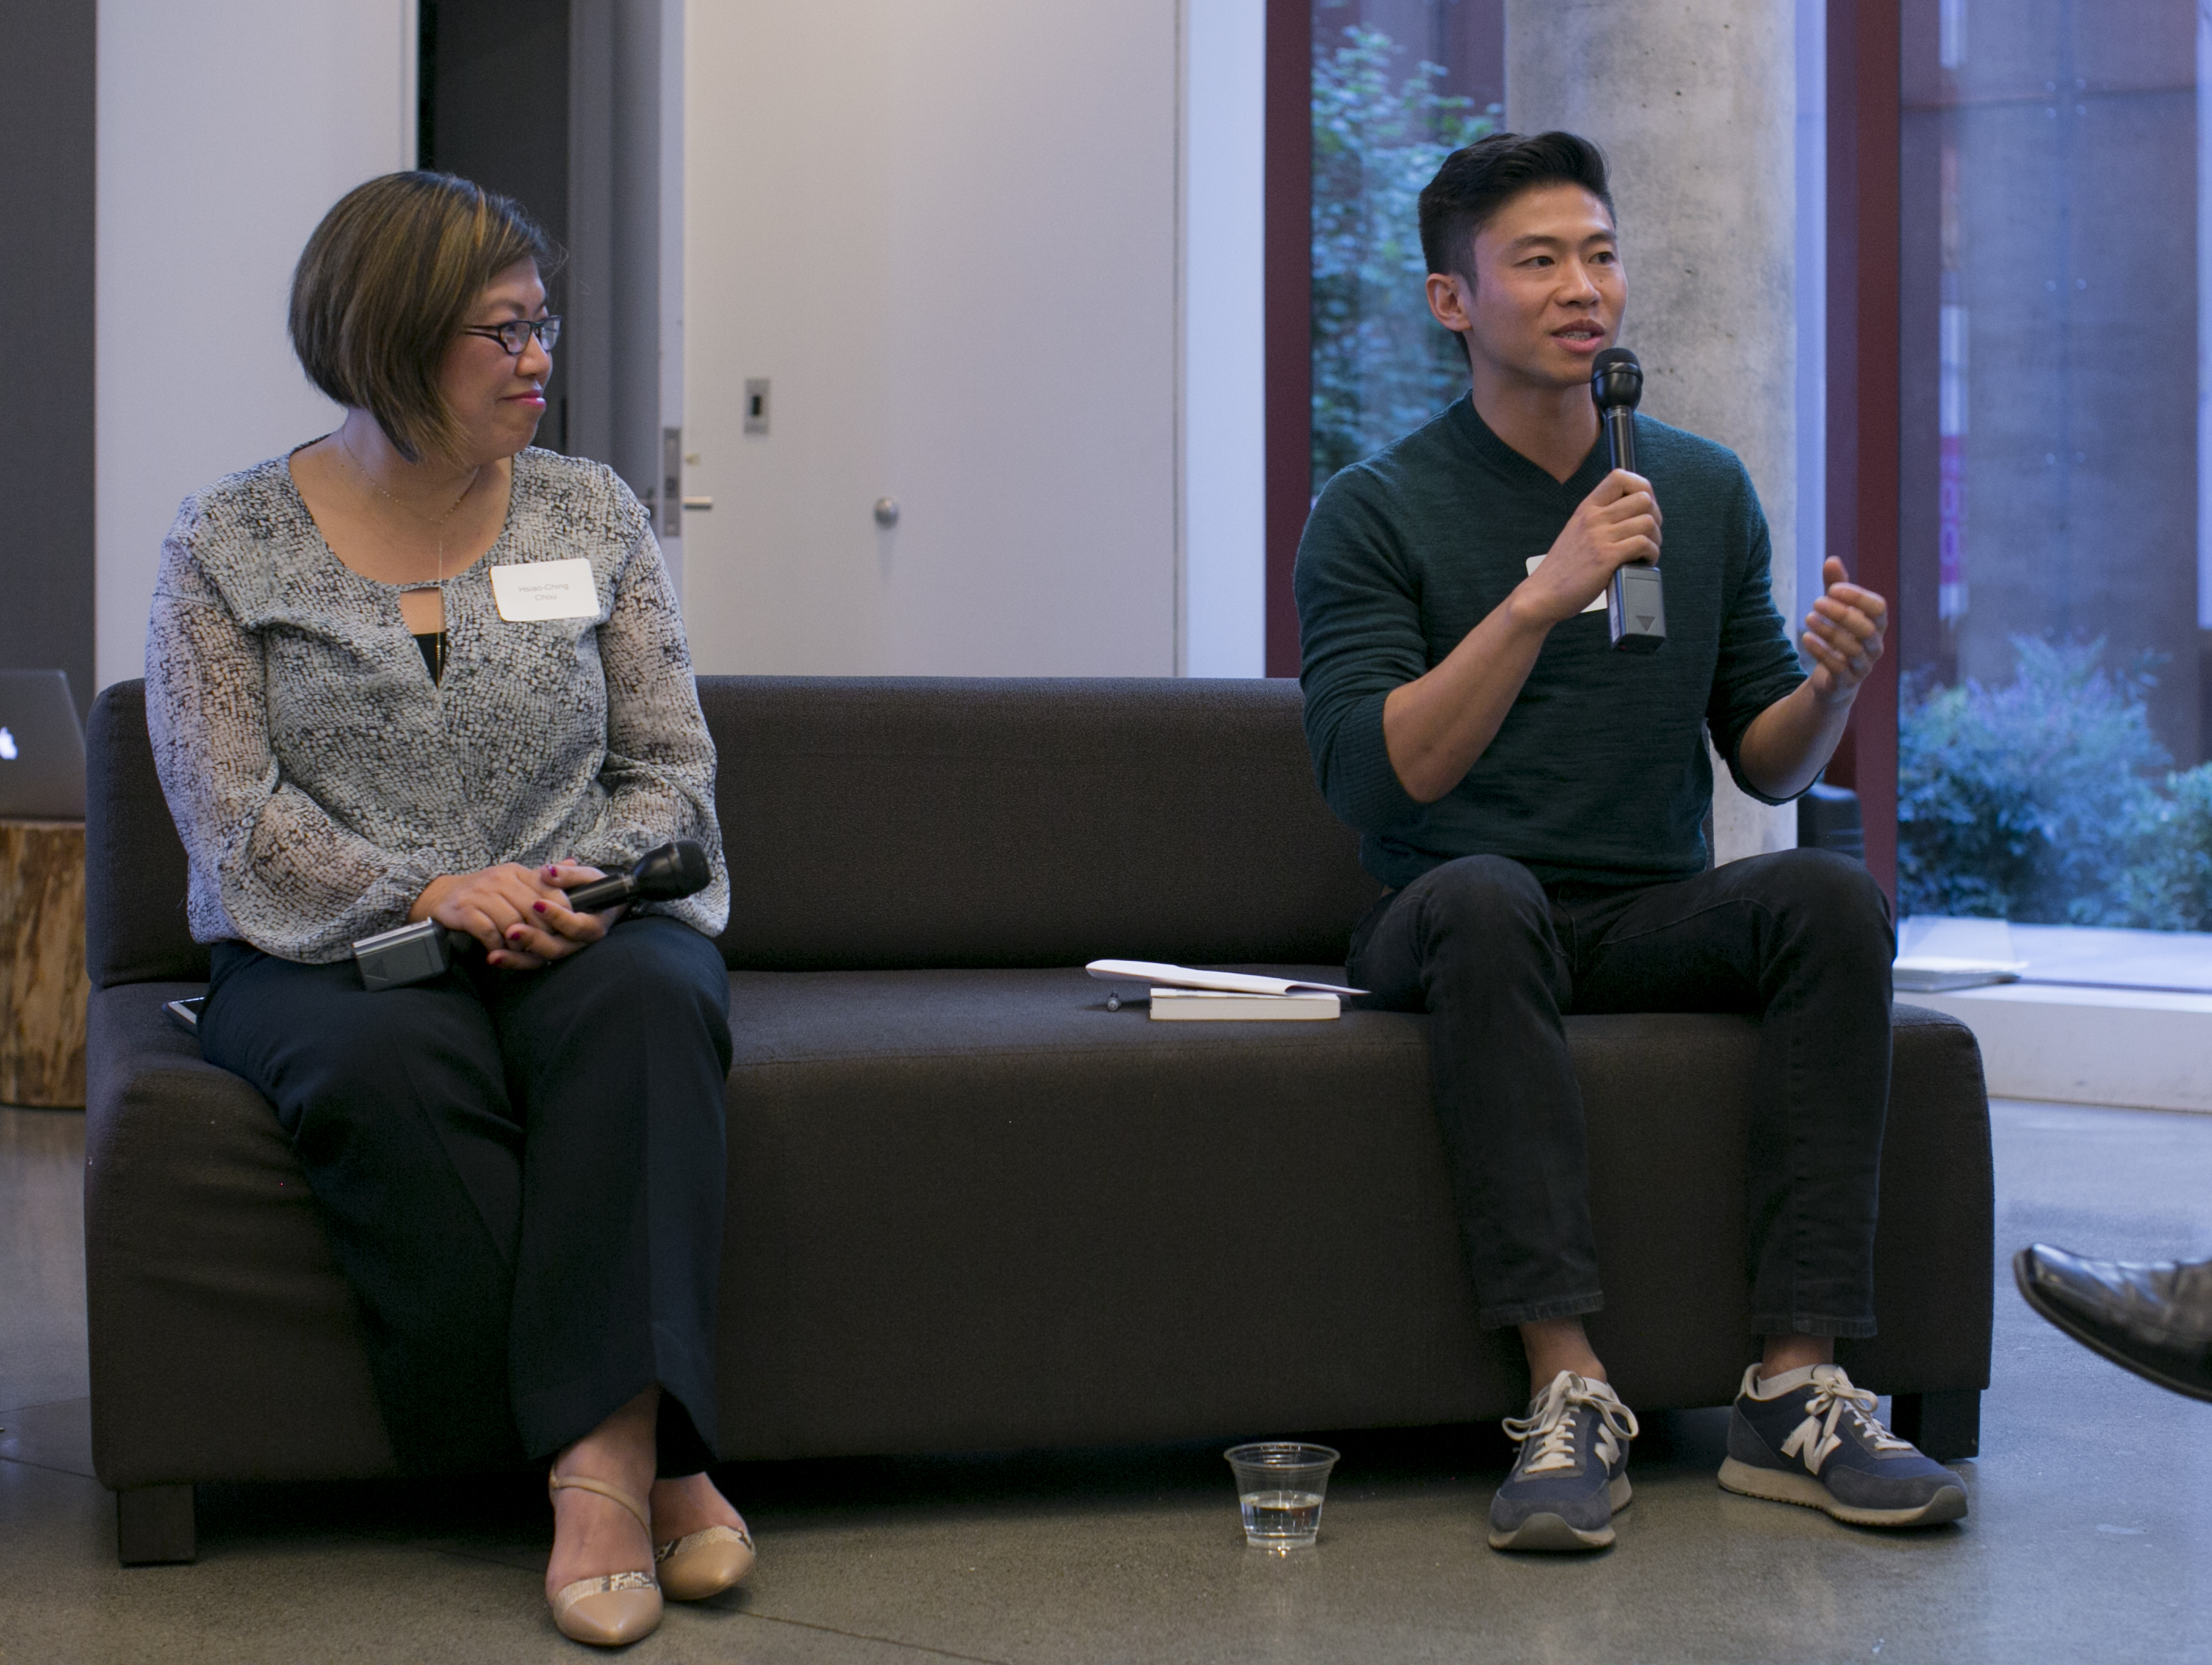 Hsiao-Ching Chou (L) and Philip Deng (R) share their experience in community building through food. Photo by Ilona Idlis.